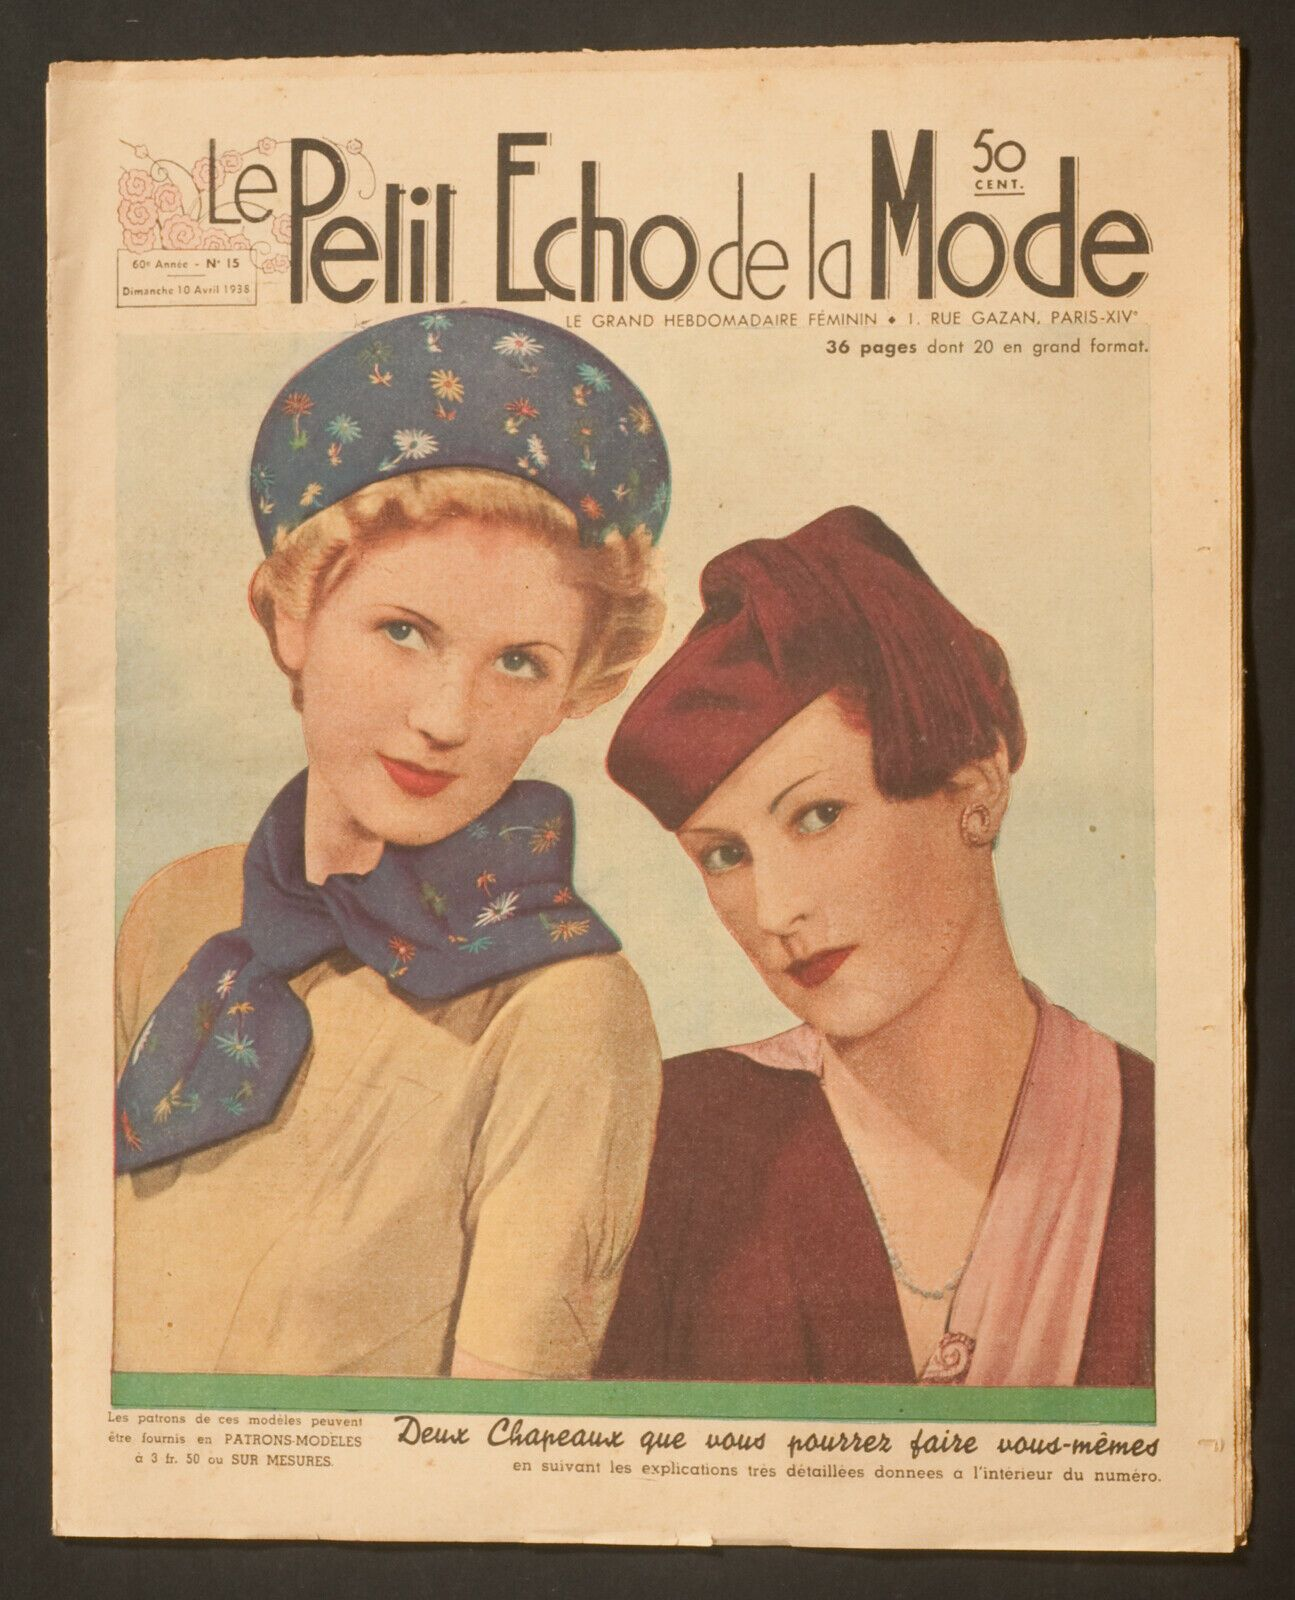 'ECHO DE LA MODE' FRENCH VINTAGE NEWSPAPER 10 APRIL 1938 | eBay